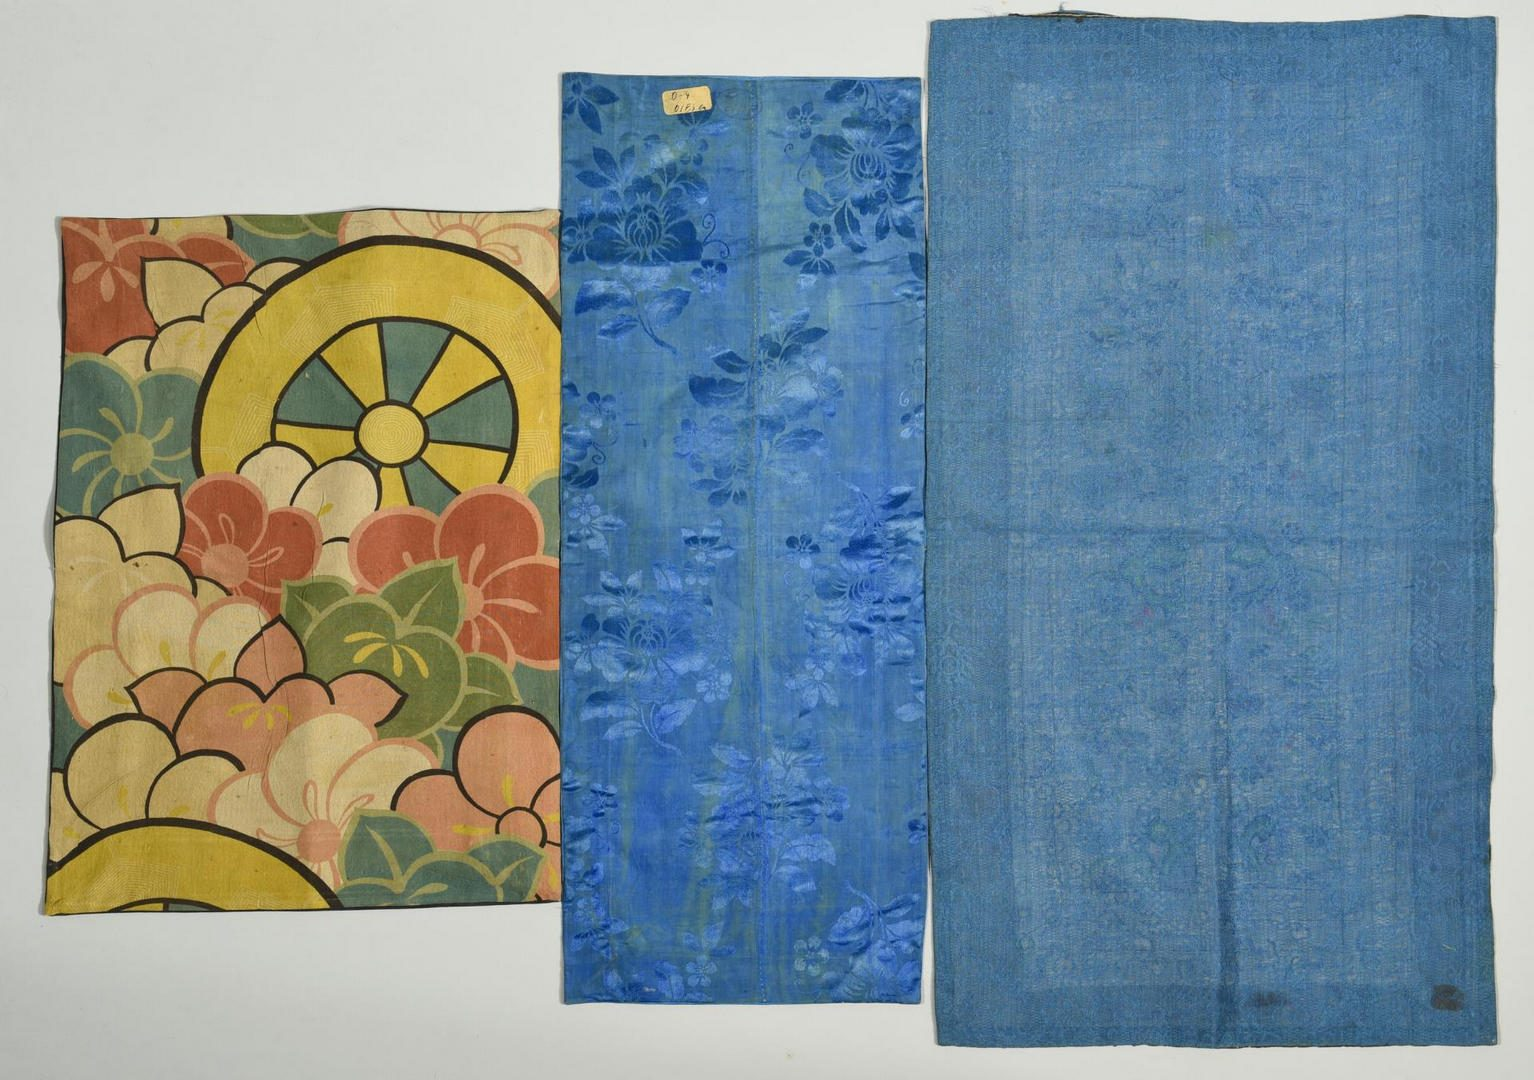 Lot 142: Group of 6 Chinese Embroideries on Silk